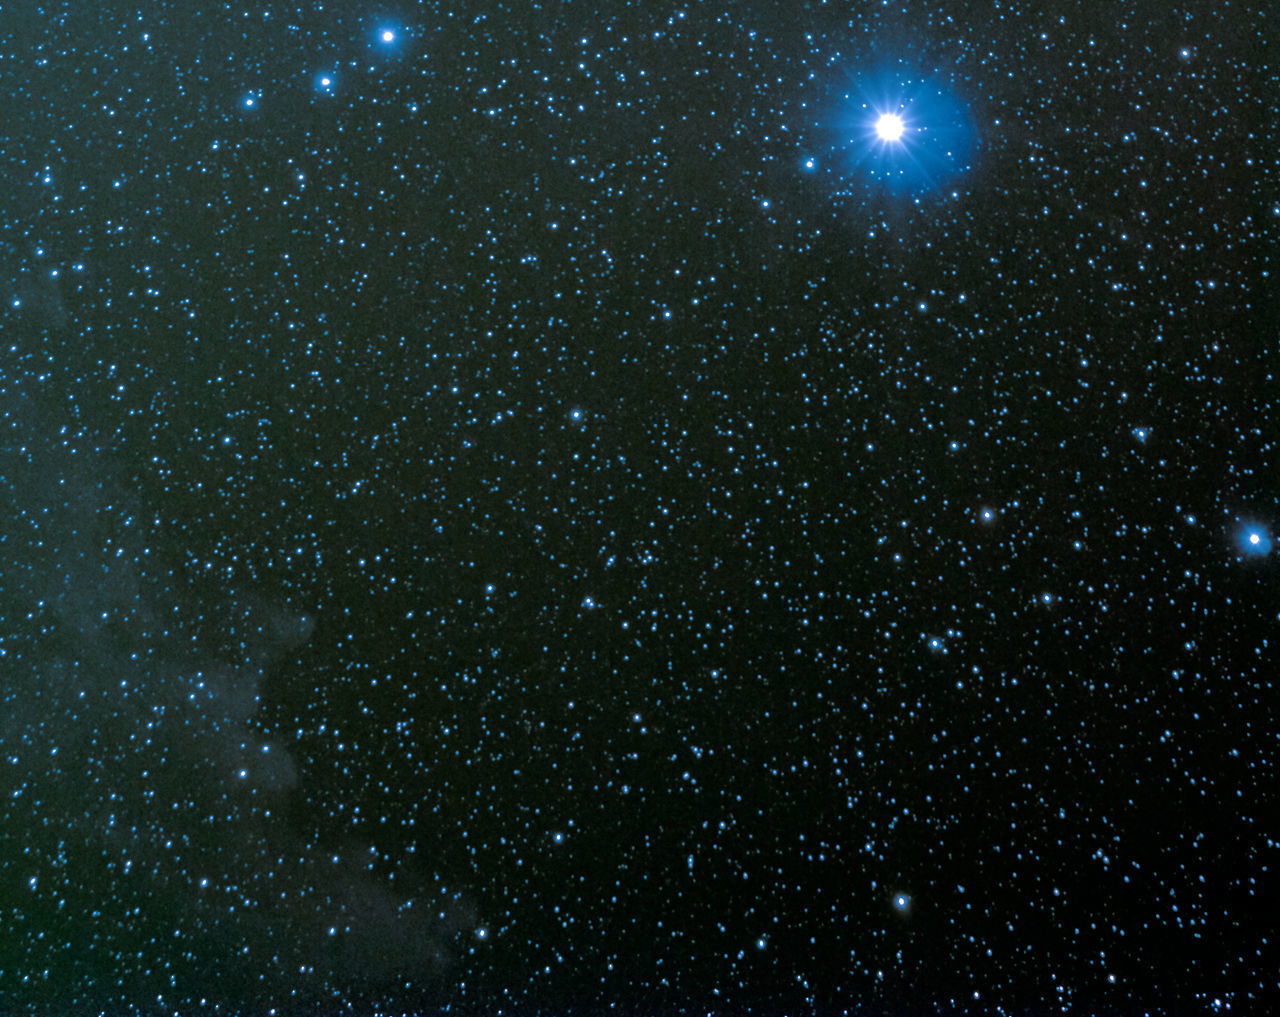 star - space, night, space, astronomy, sky, galaxy, illuminated, nature, no people, glowing, constellation, bright, light - natural phenomenon, outdoors, beauty in nature, backgrounds, dark, scenics - nature, science, space exploration, luminosity, astrology, globular star cluster